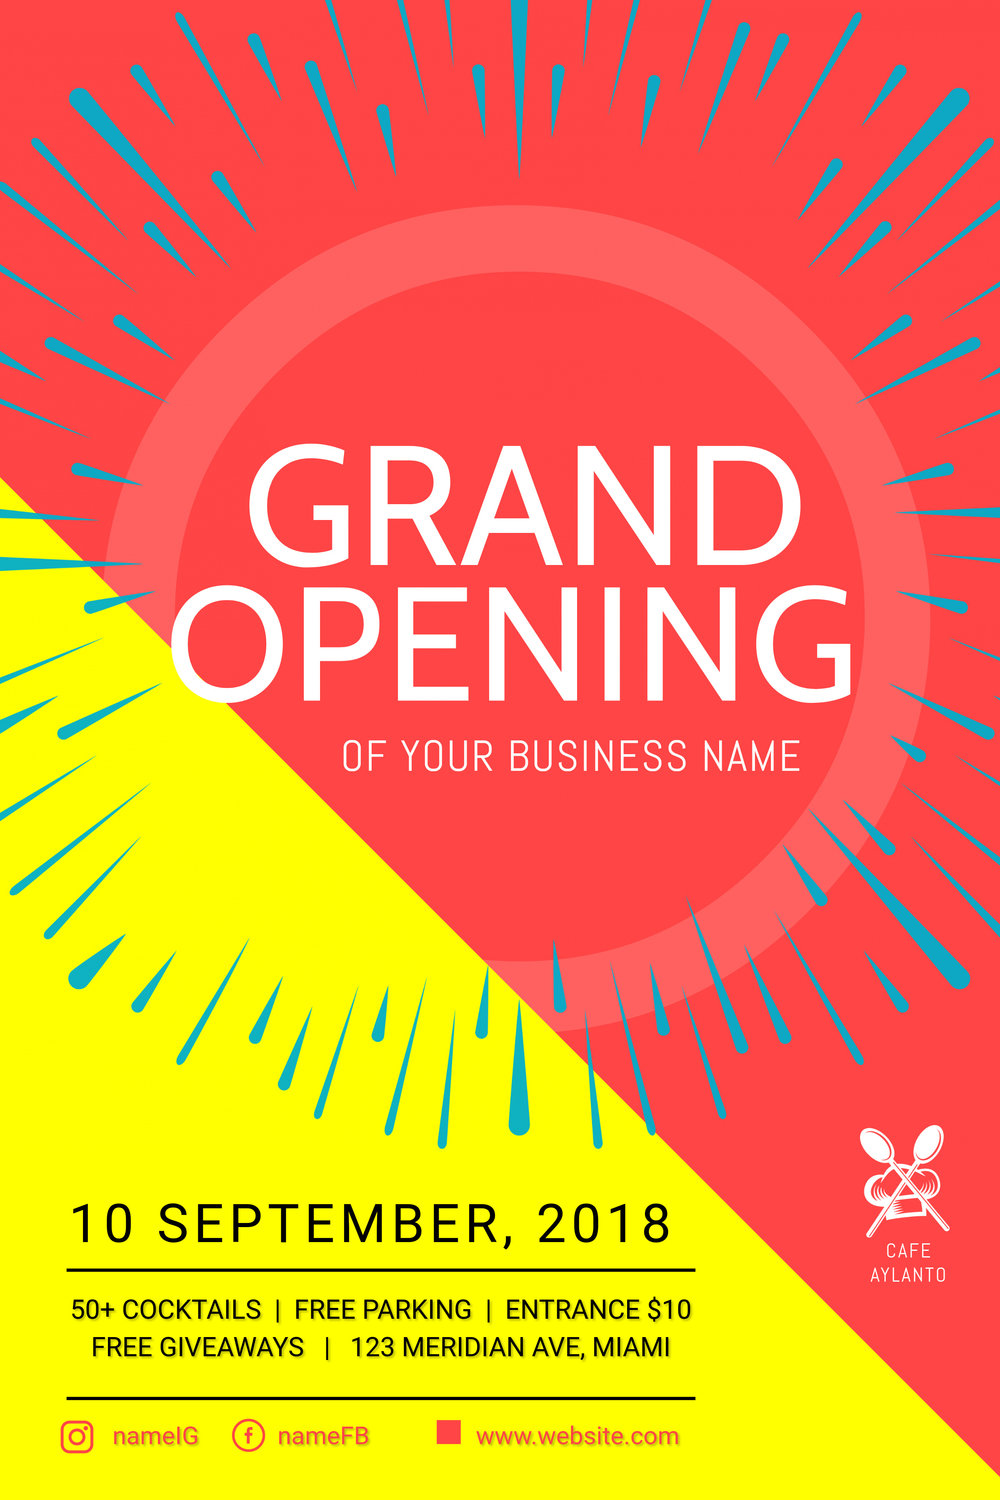 Copy of Business Grand Opening Poster Template.jpg